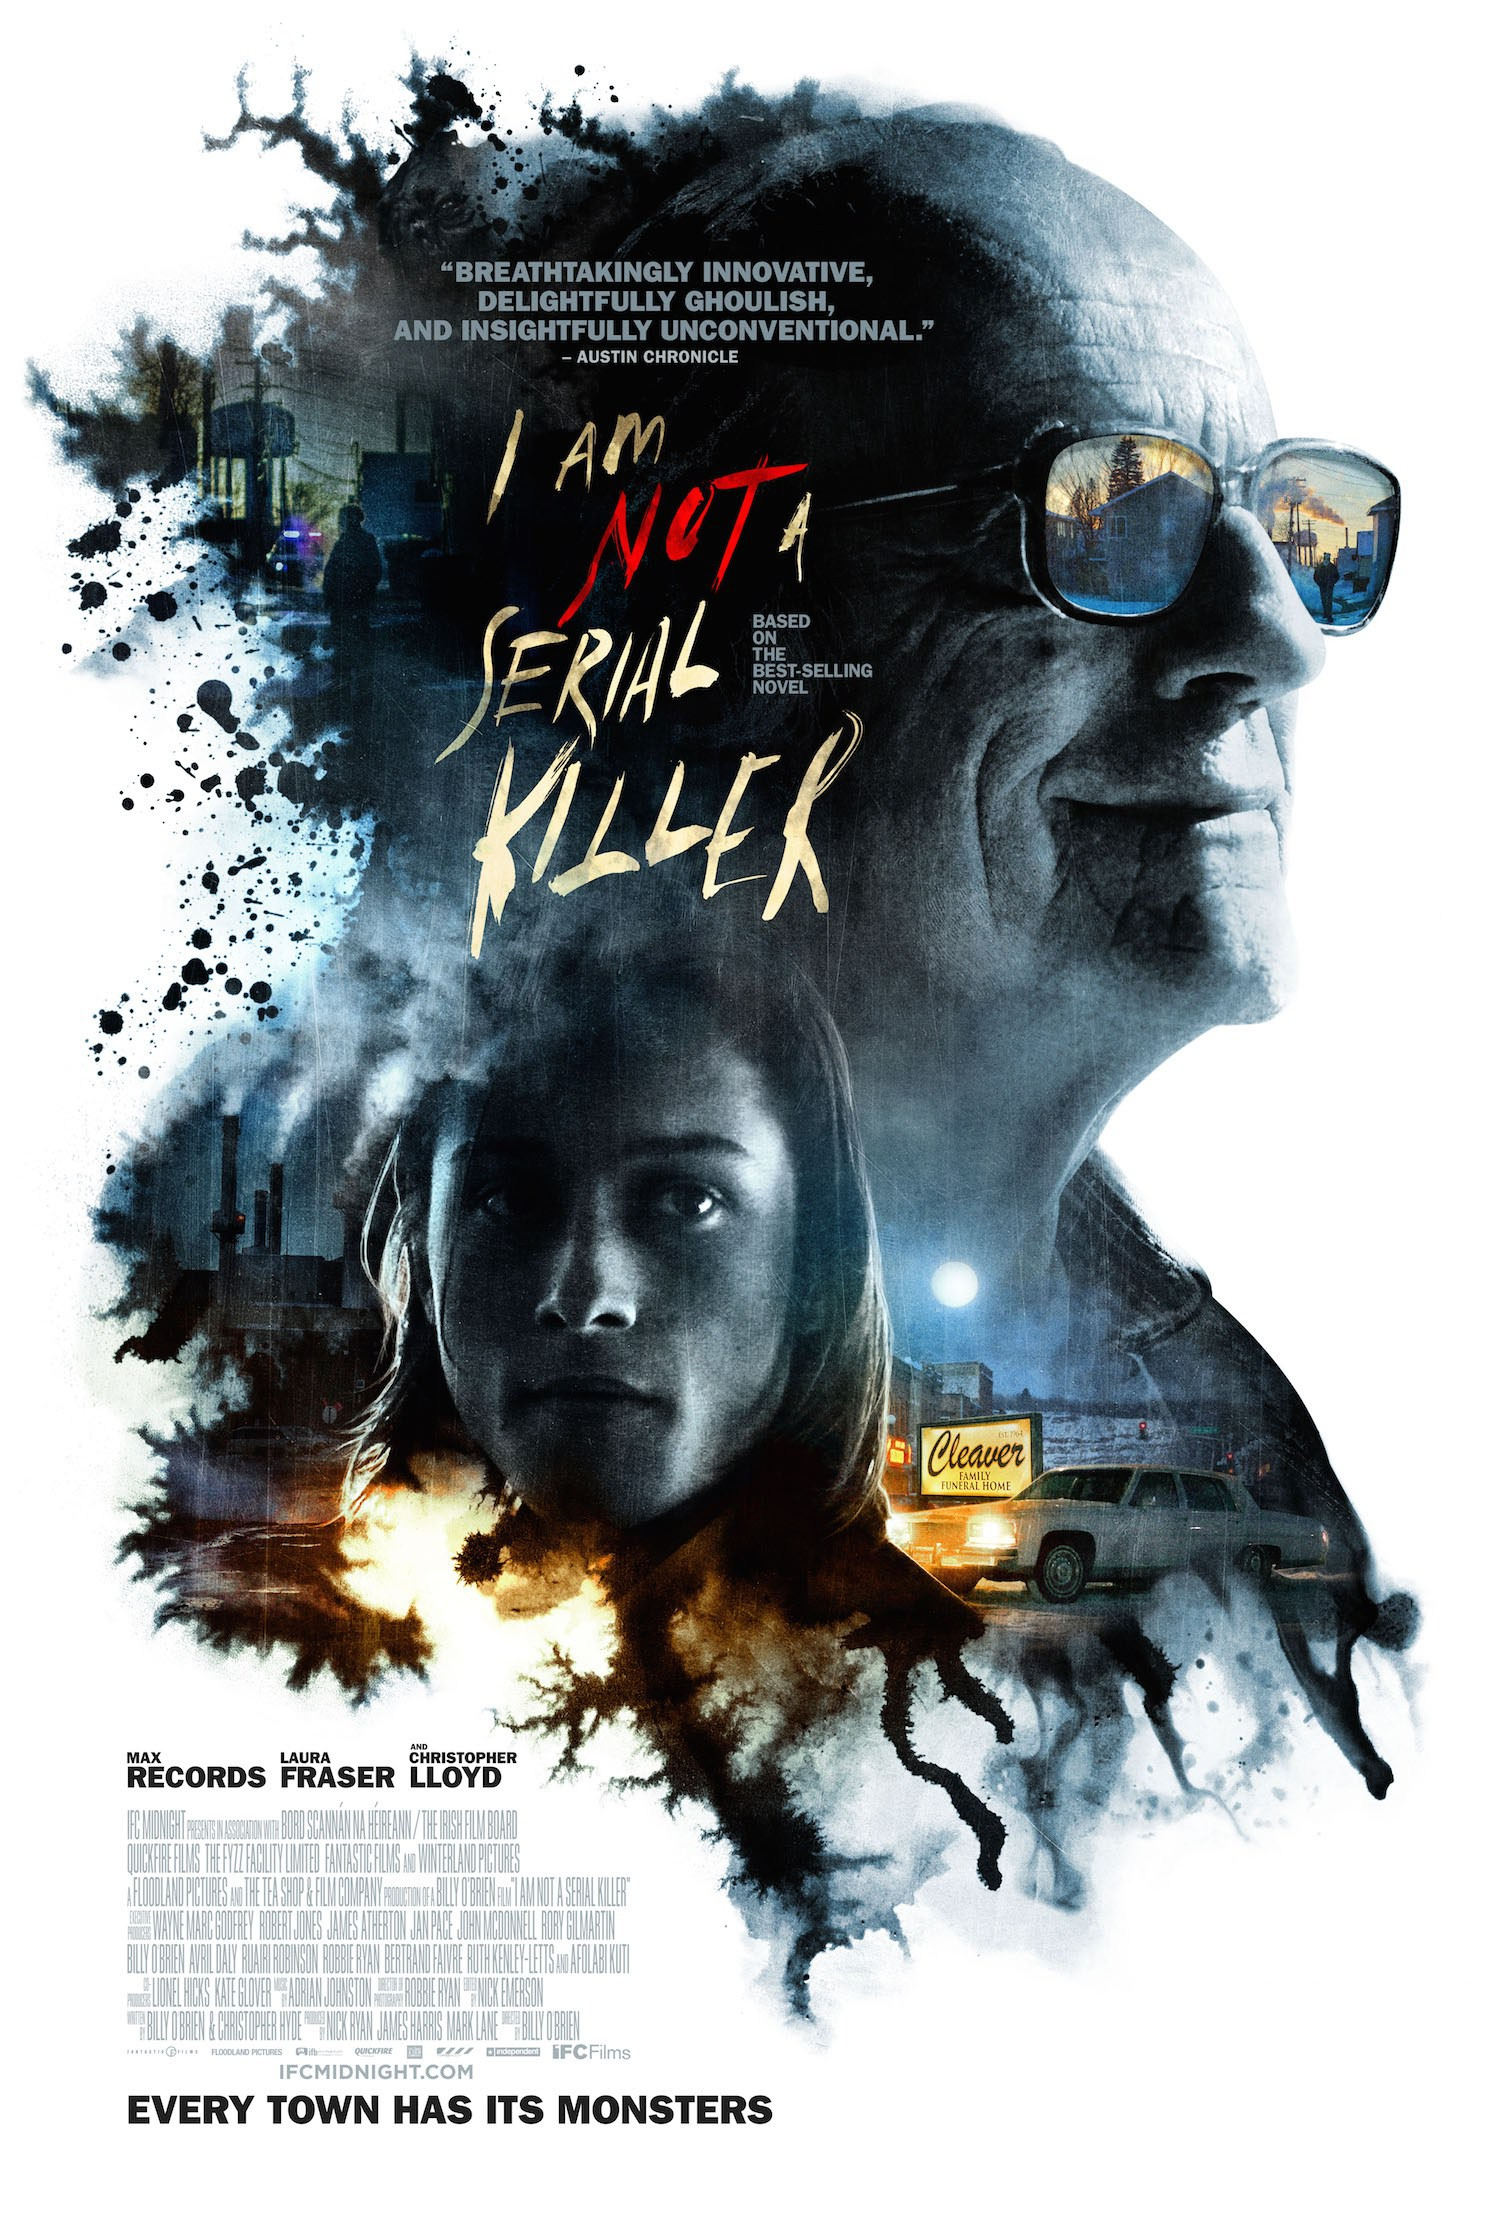 Scannain Talks - I Am Not A Serial Killer with director Billy O'Brien